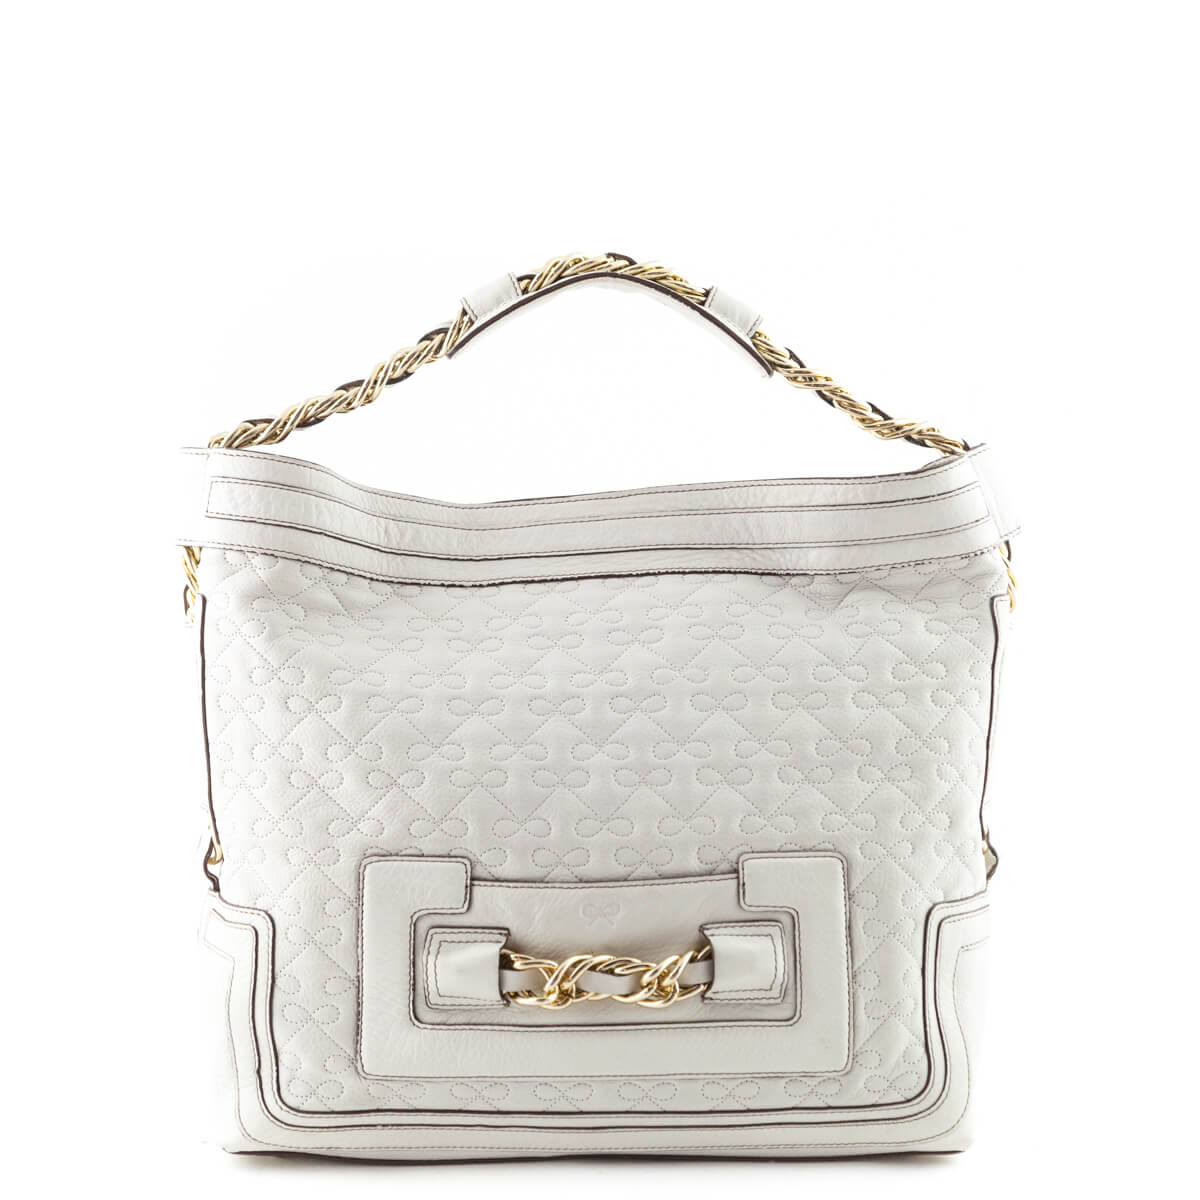 f9c00eee95d Anya Hindmarch Cream Quilted Leather Shoulder Bag